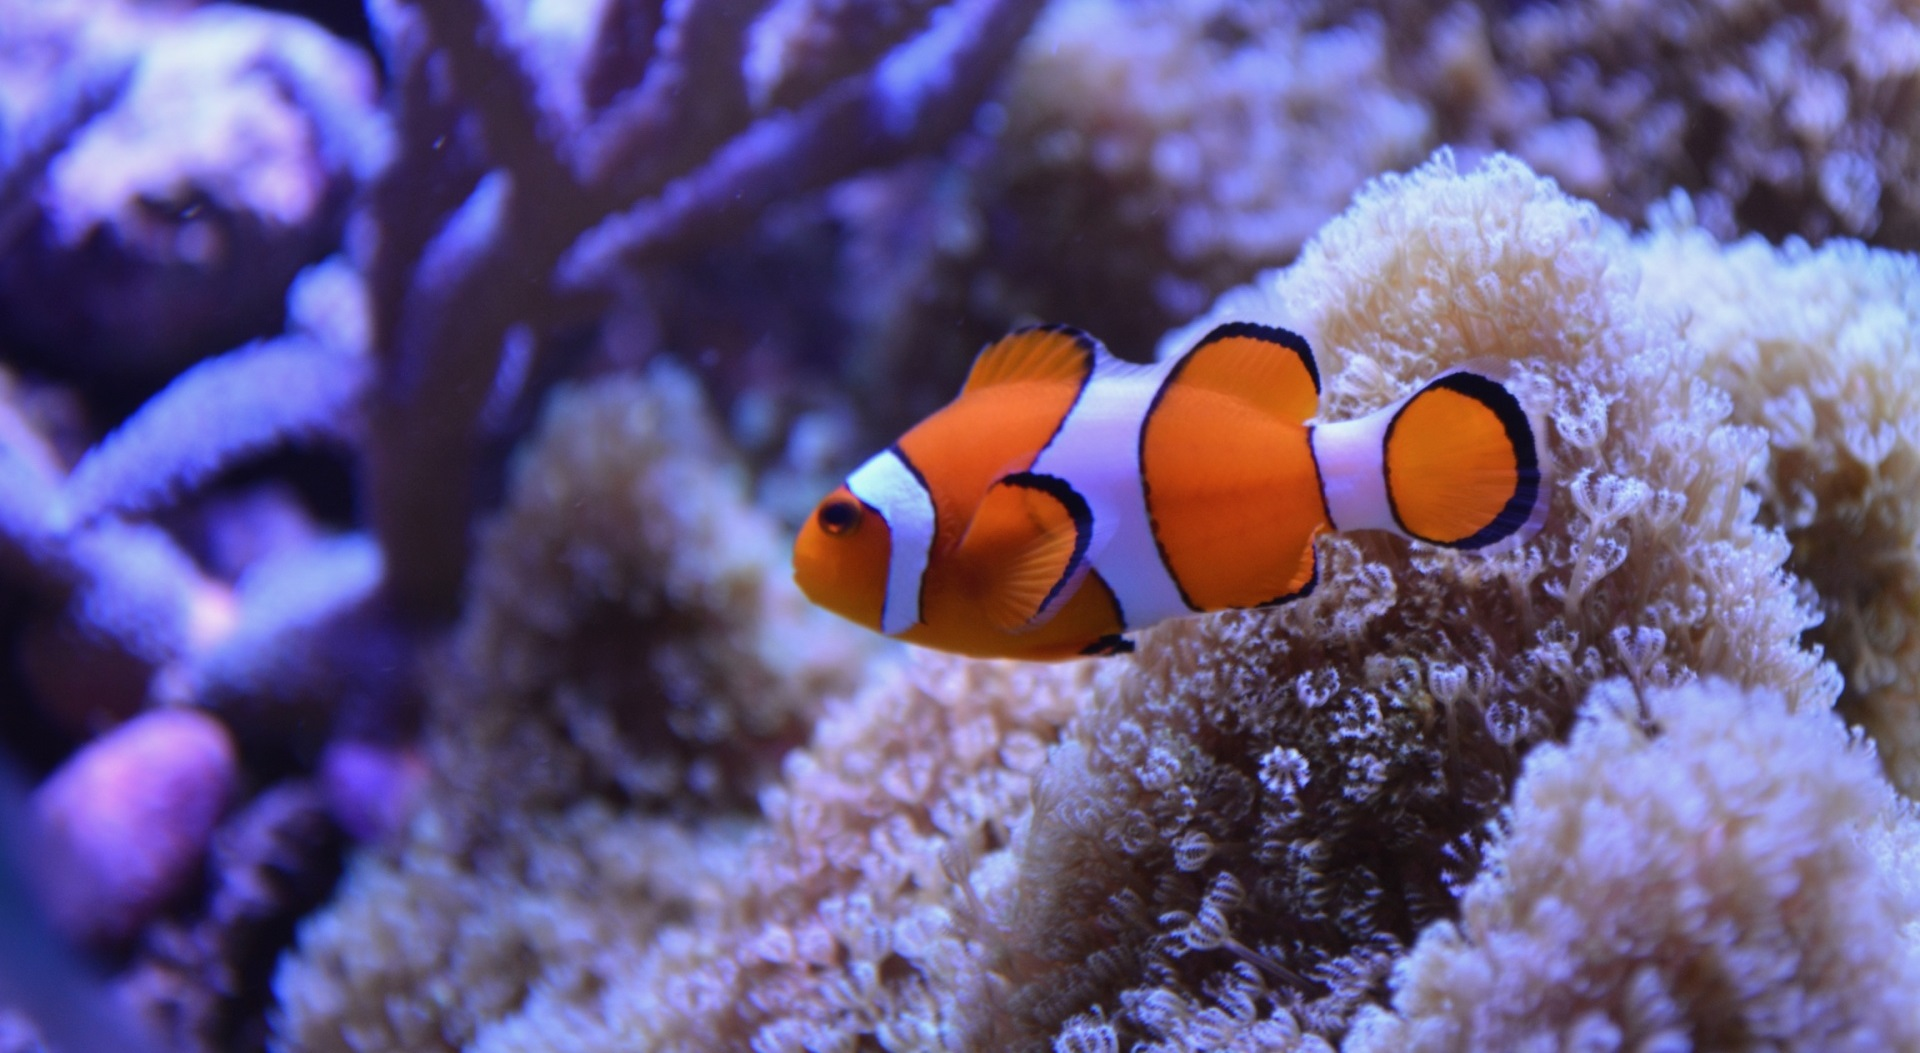 Image representing theme of post: 'Evolution and development of white stripes in Nemo and his cousins'